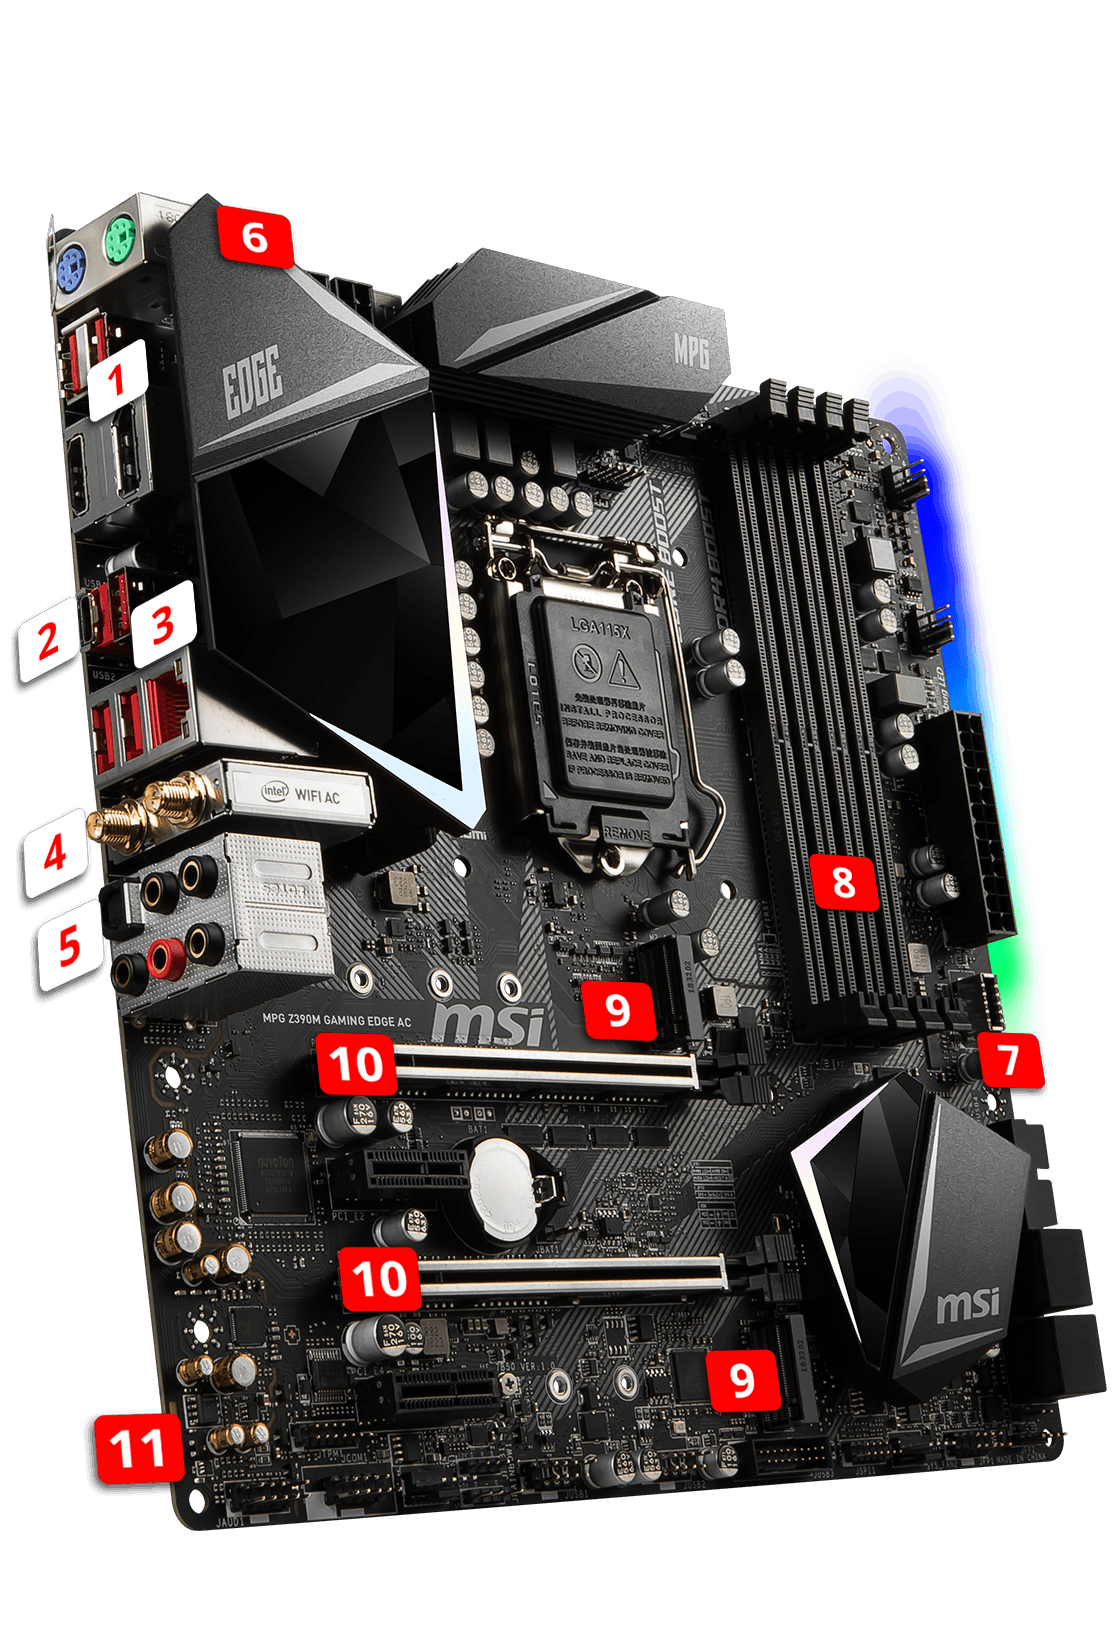 MSI MPG Z390M GAMING EDGE AC overview